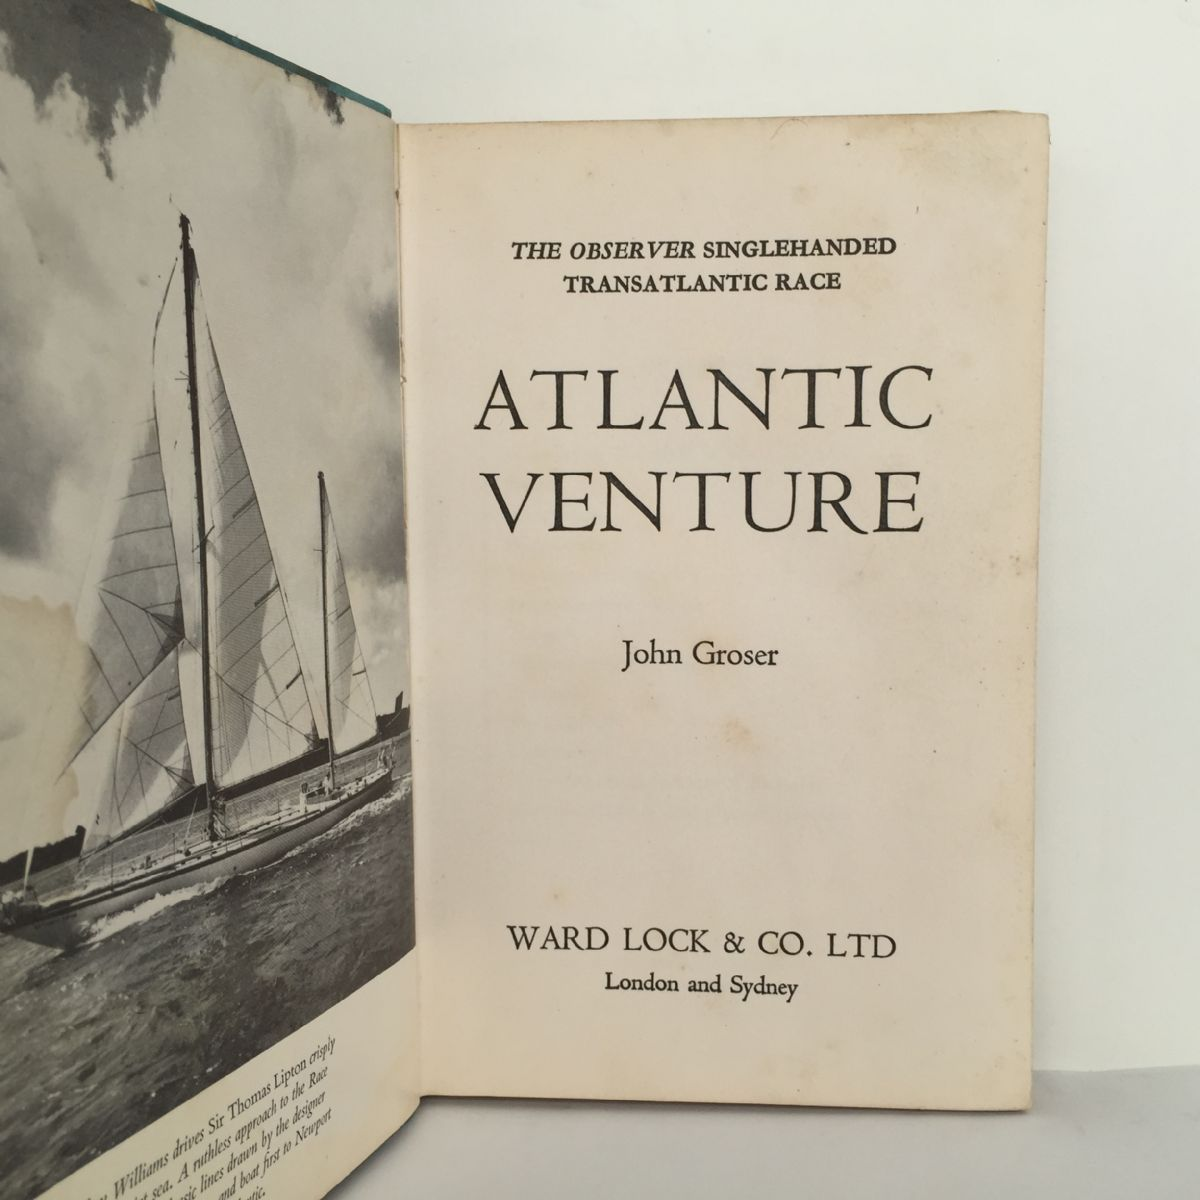 Atlantic Venture: The Observer Singlehanded Transatlantic Race